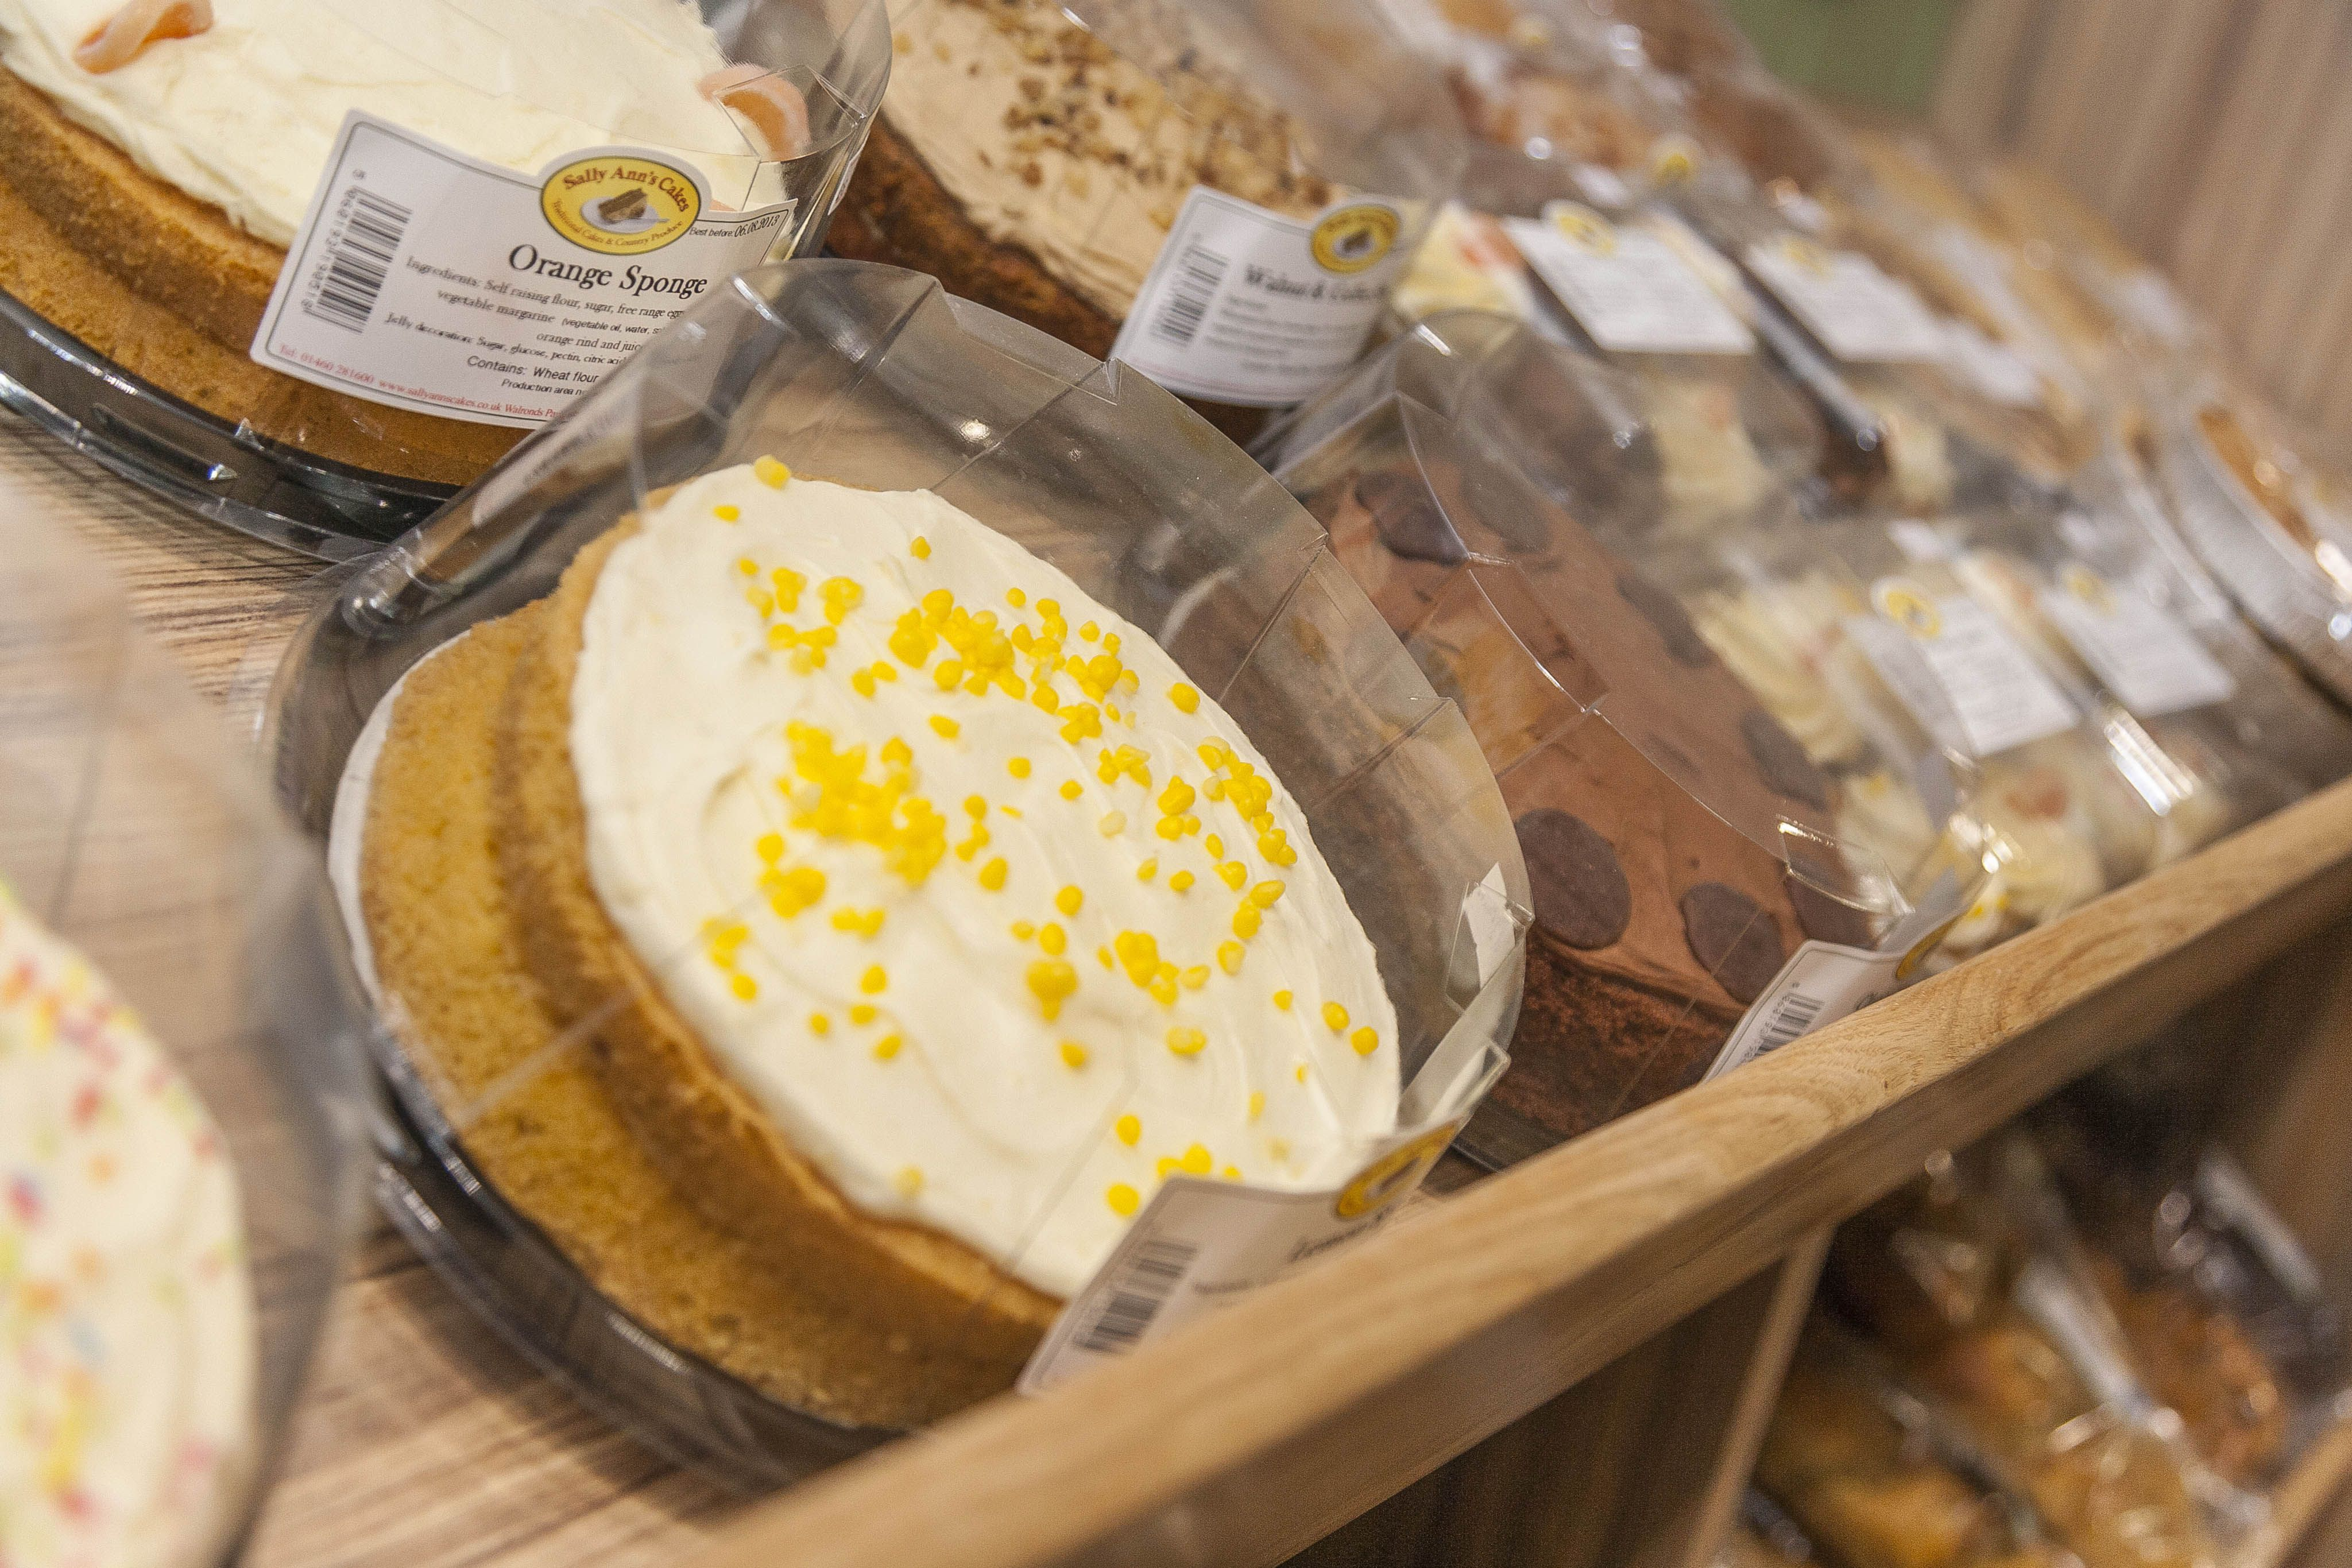 handmade cakes at Cheddar Woods Farm Shop, Somerset